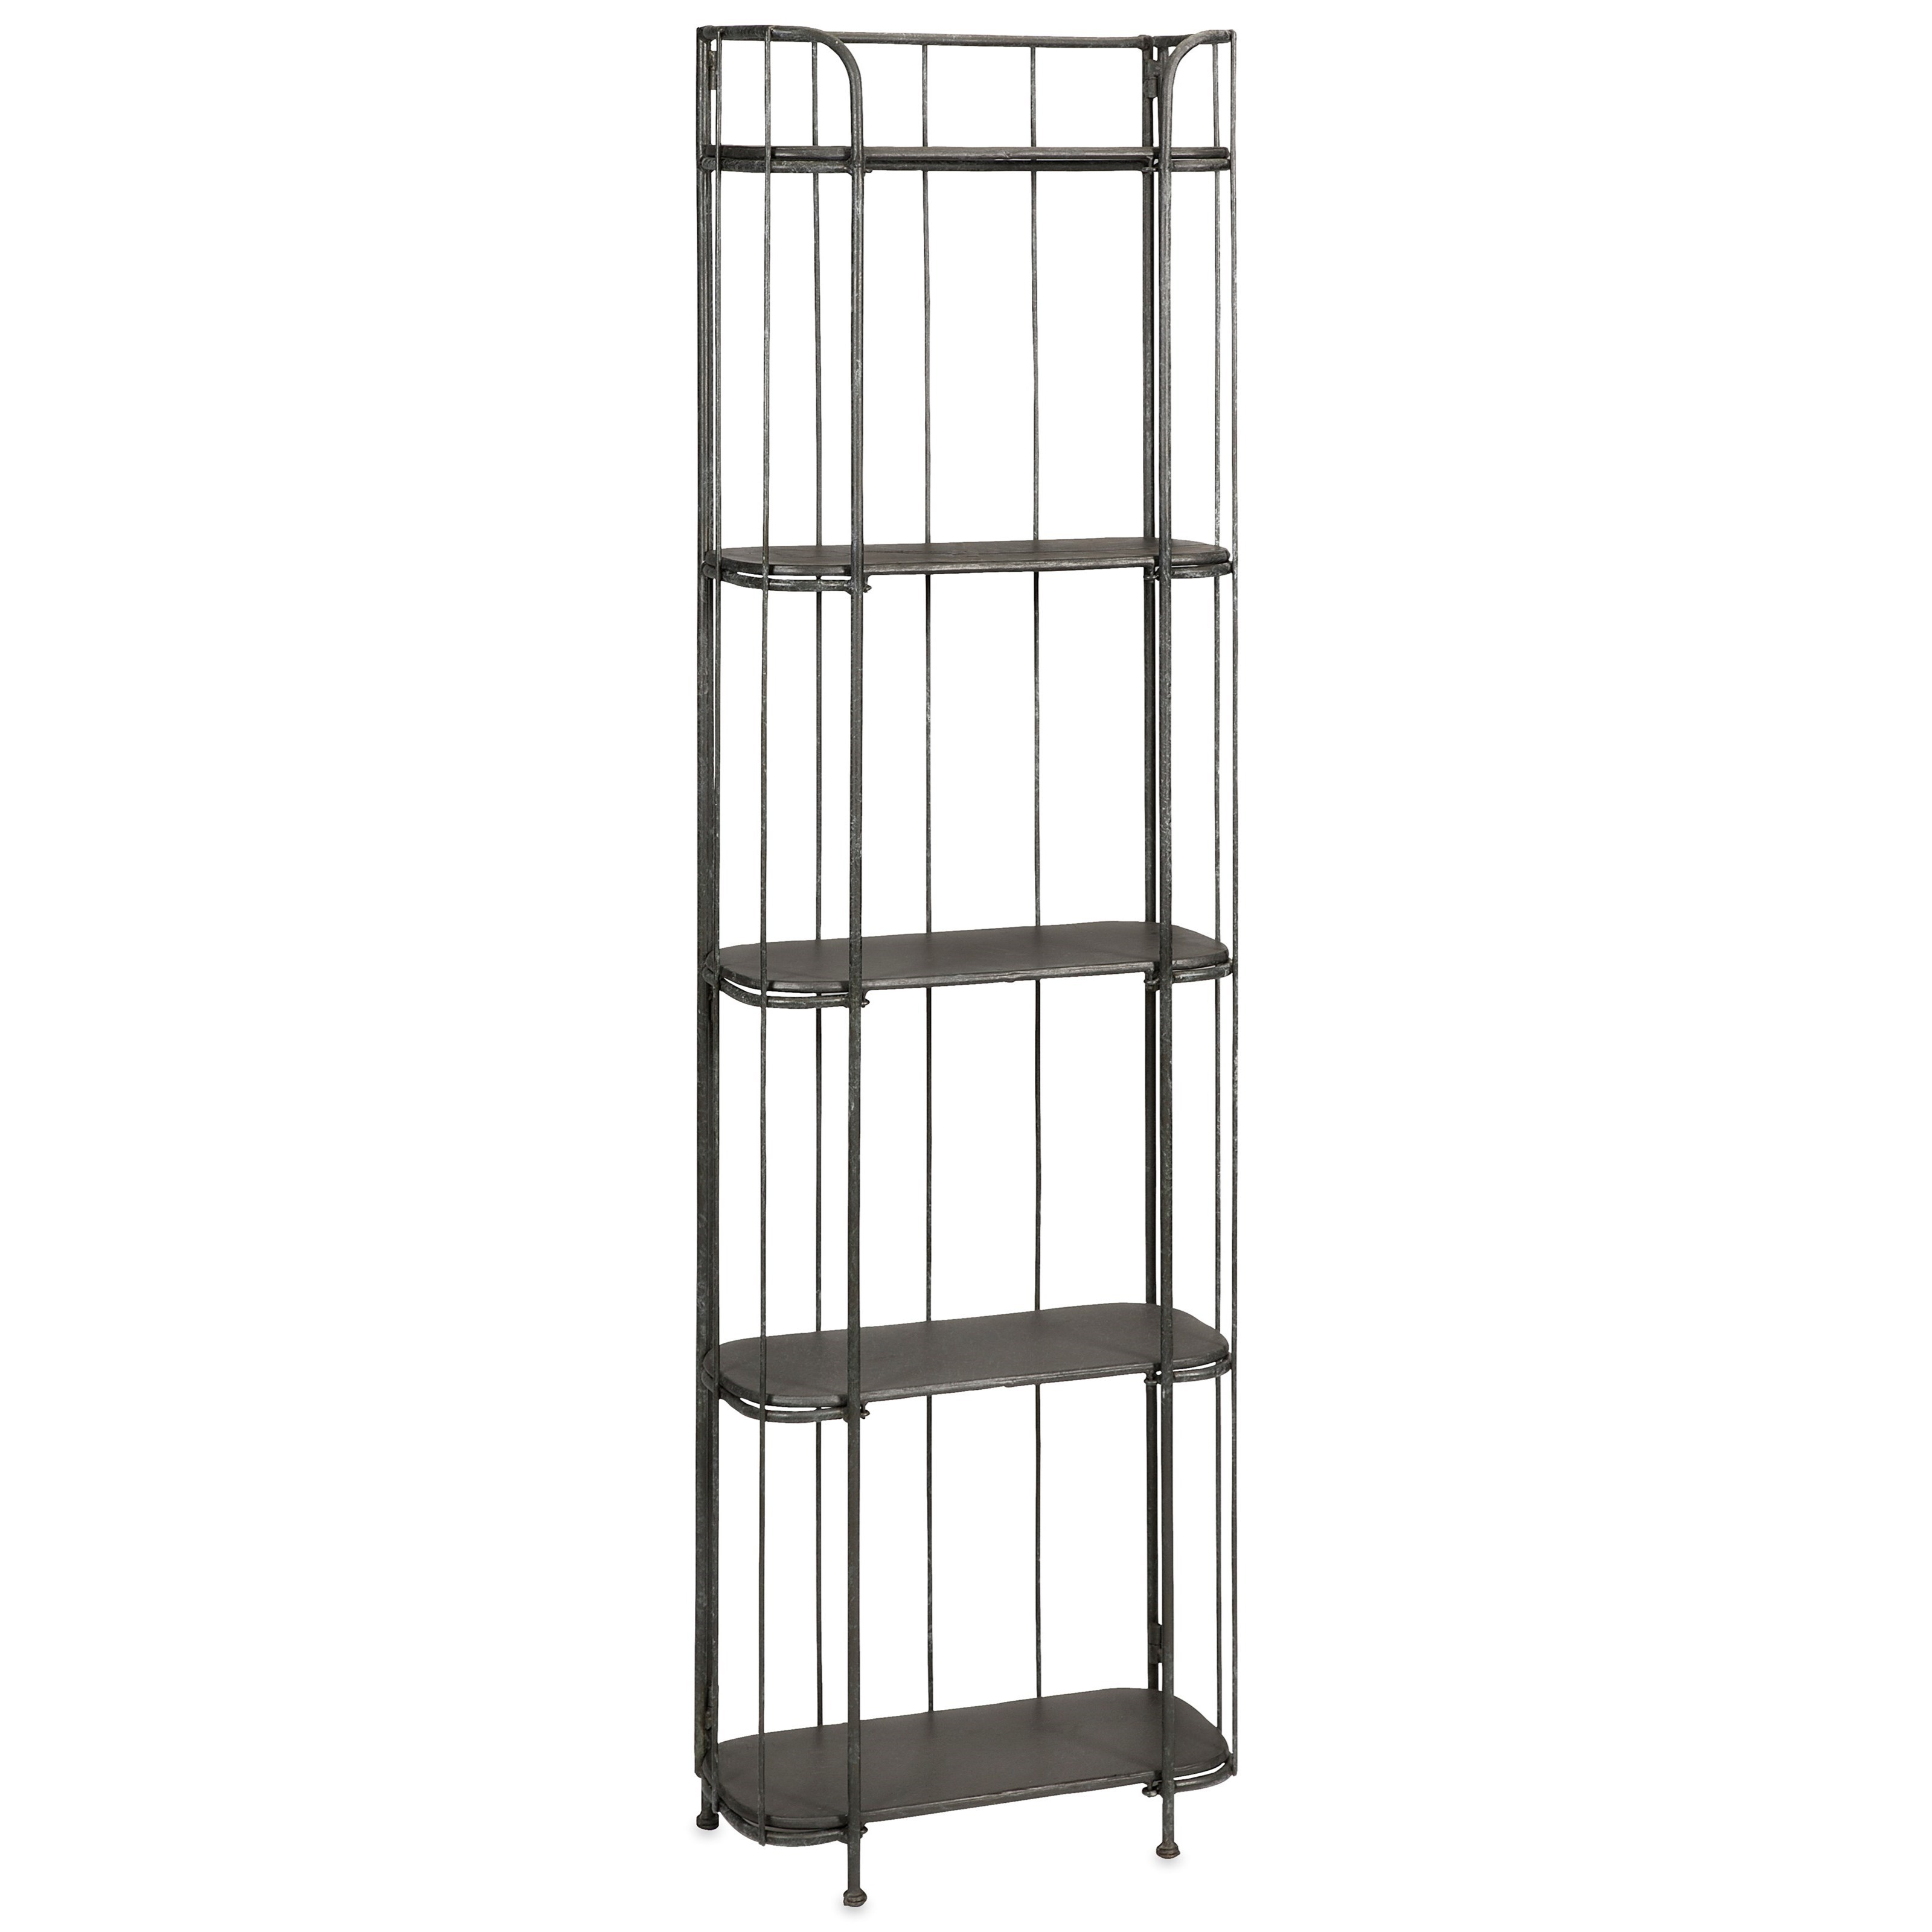 Accent Furniture Brasov Tall Iron Etagere by IMAX Worldwide Home at Alison Craig Home Furnishings